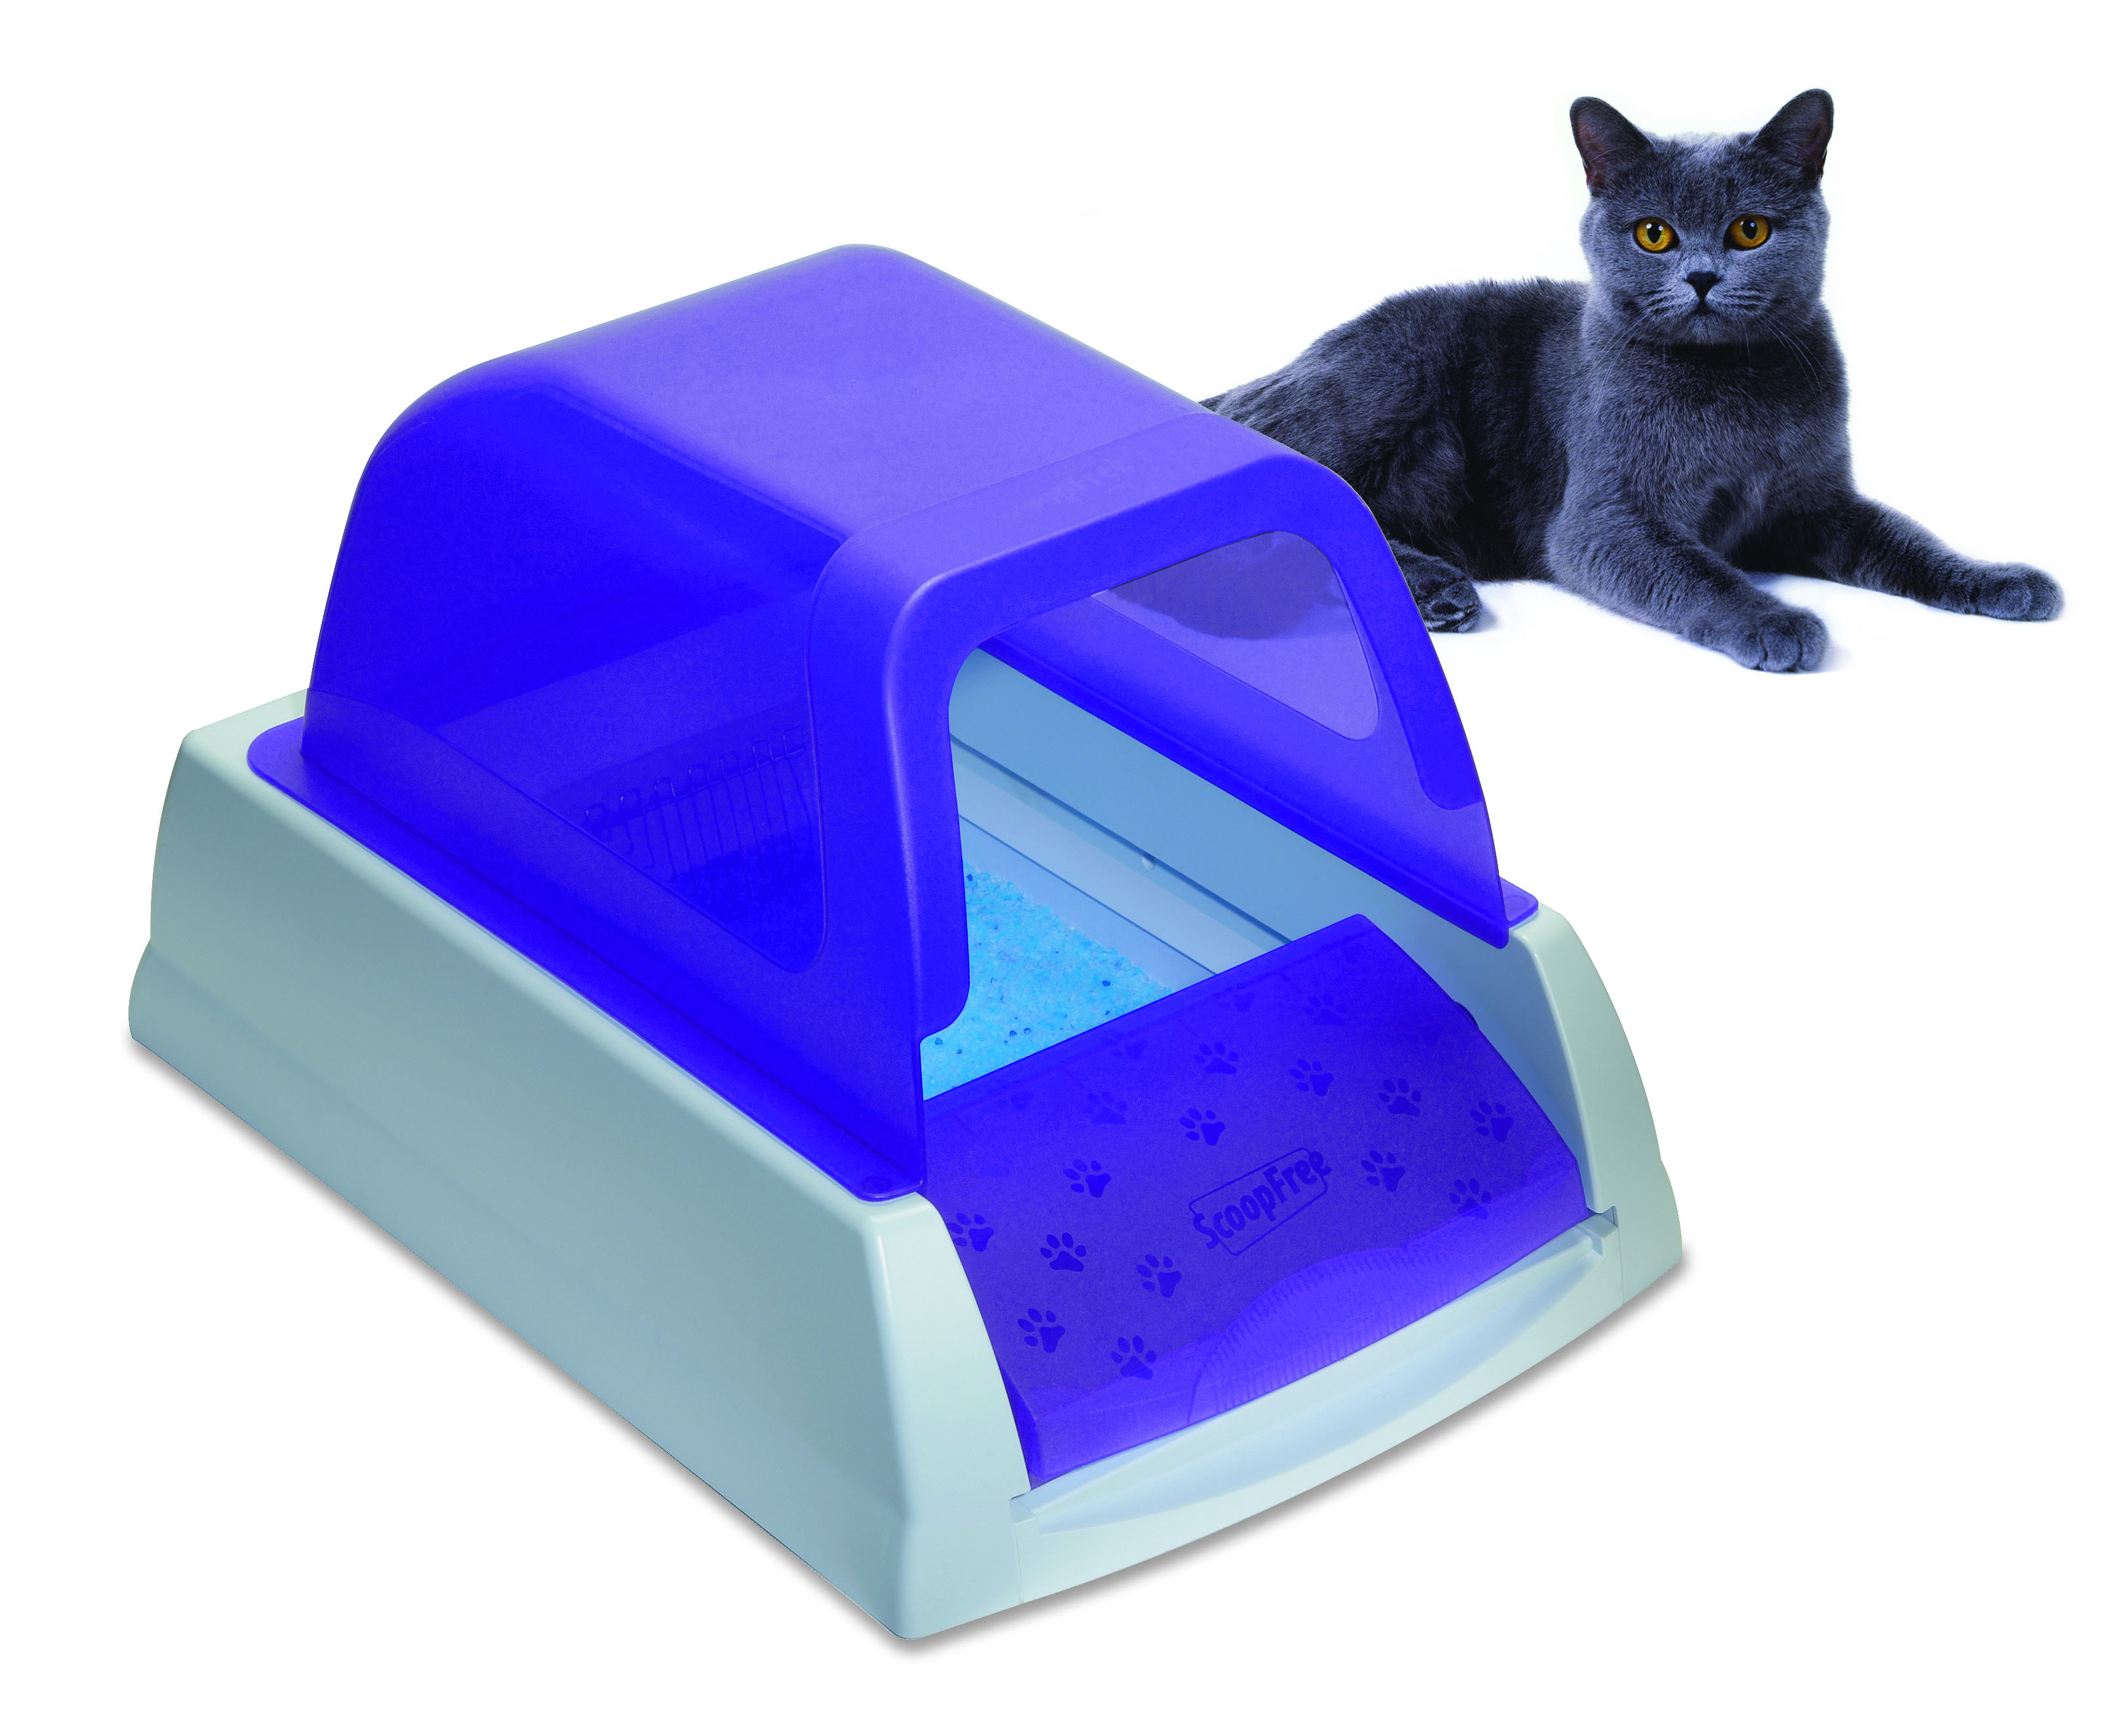 Self Cleaning Cat Litter Box Petsafe Litter Boxes For